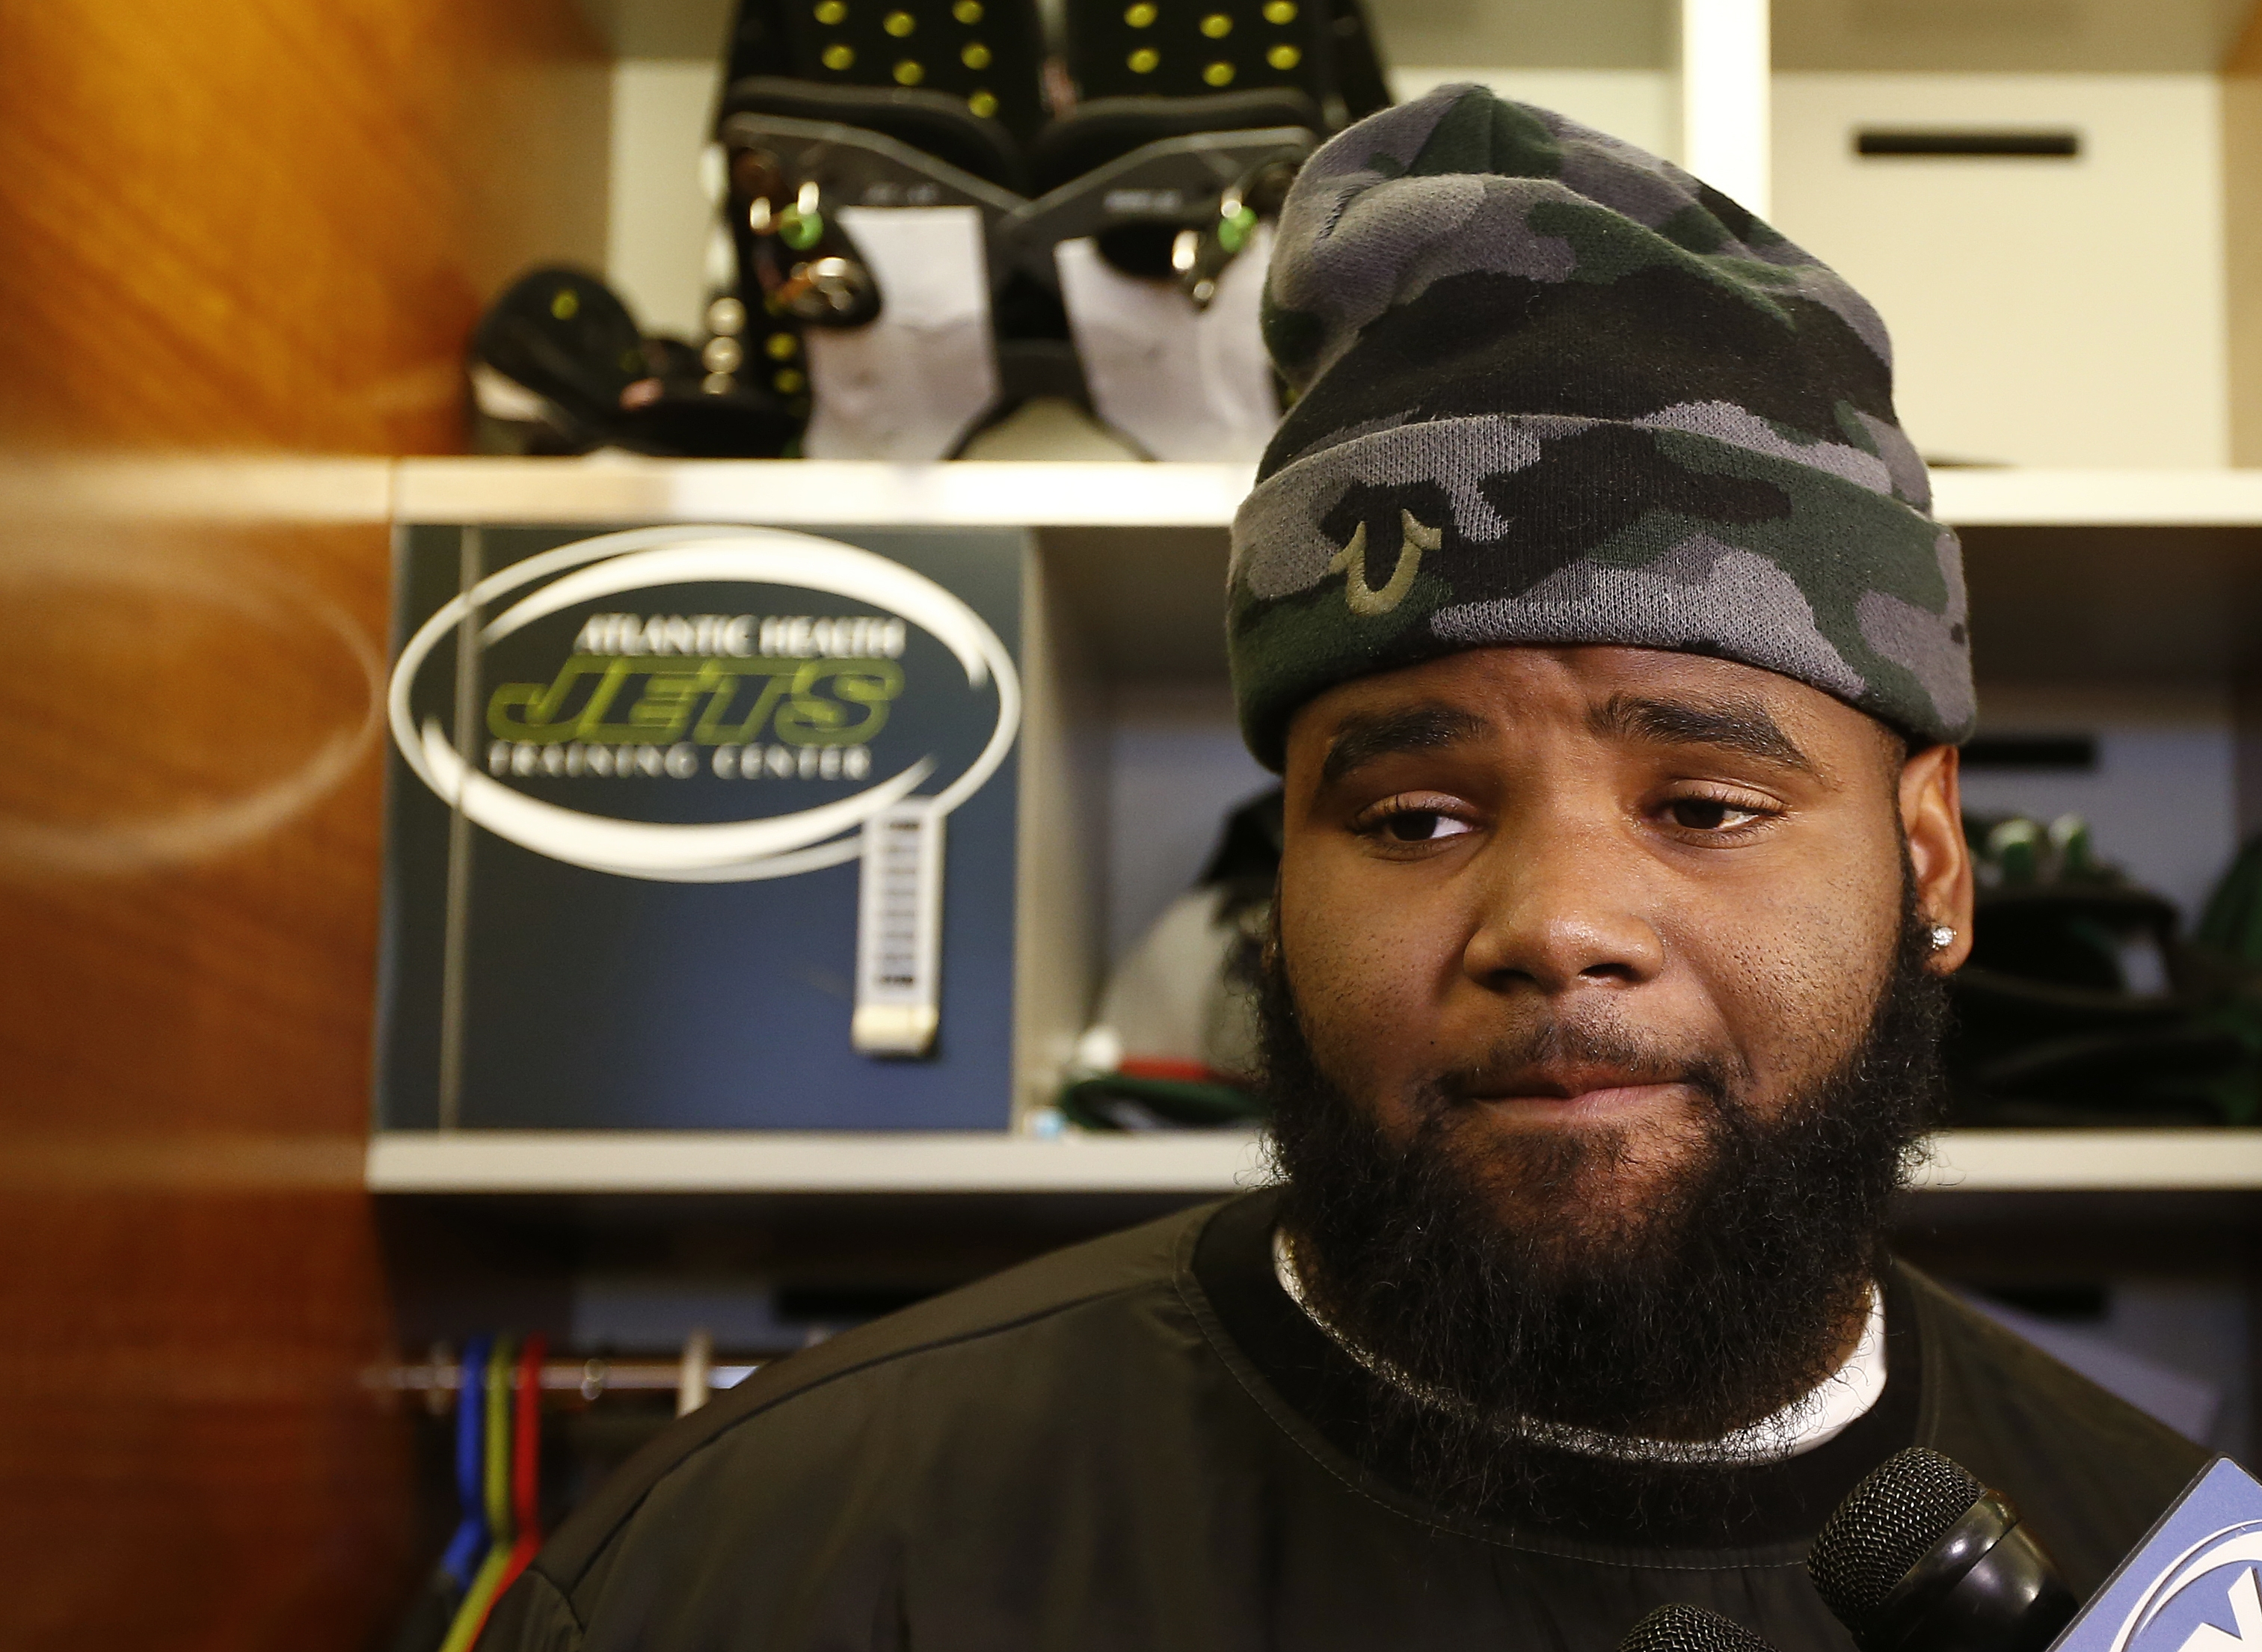 New York Jets defensive tackle Sheldon Richardson talks to the media as the team clears out their lockers at the team's NFL football training facility, Monday, Jan. 4, 2016, in Florham Park, N.J. (AP Photo/Rich Schultz)